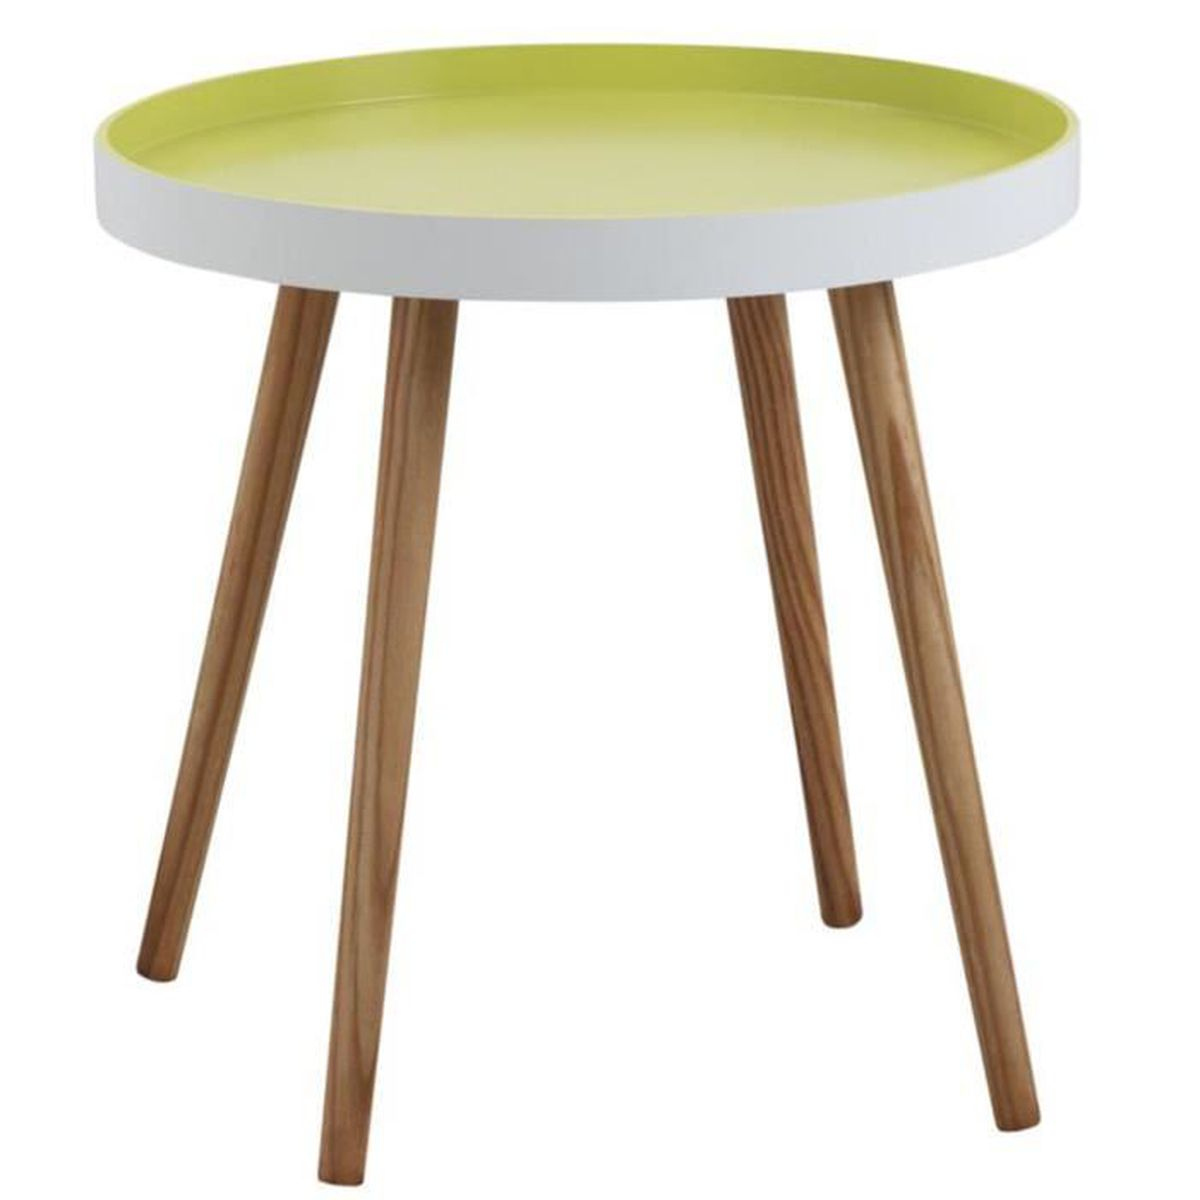 table dappoint table dappoint ronde en bois et mdf laqu - Table D Appoint Ronde